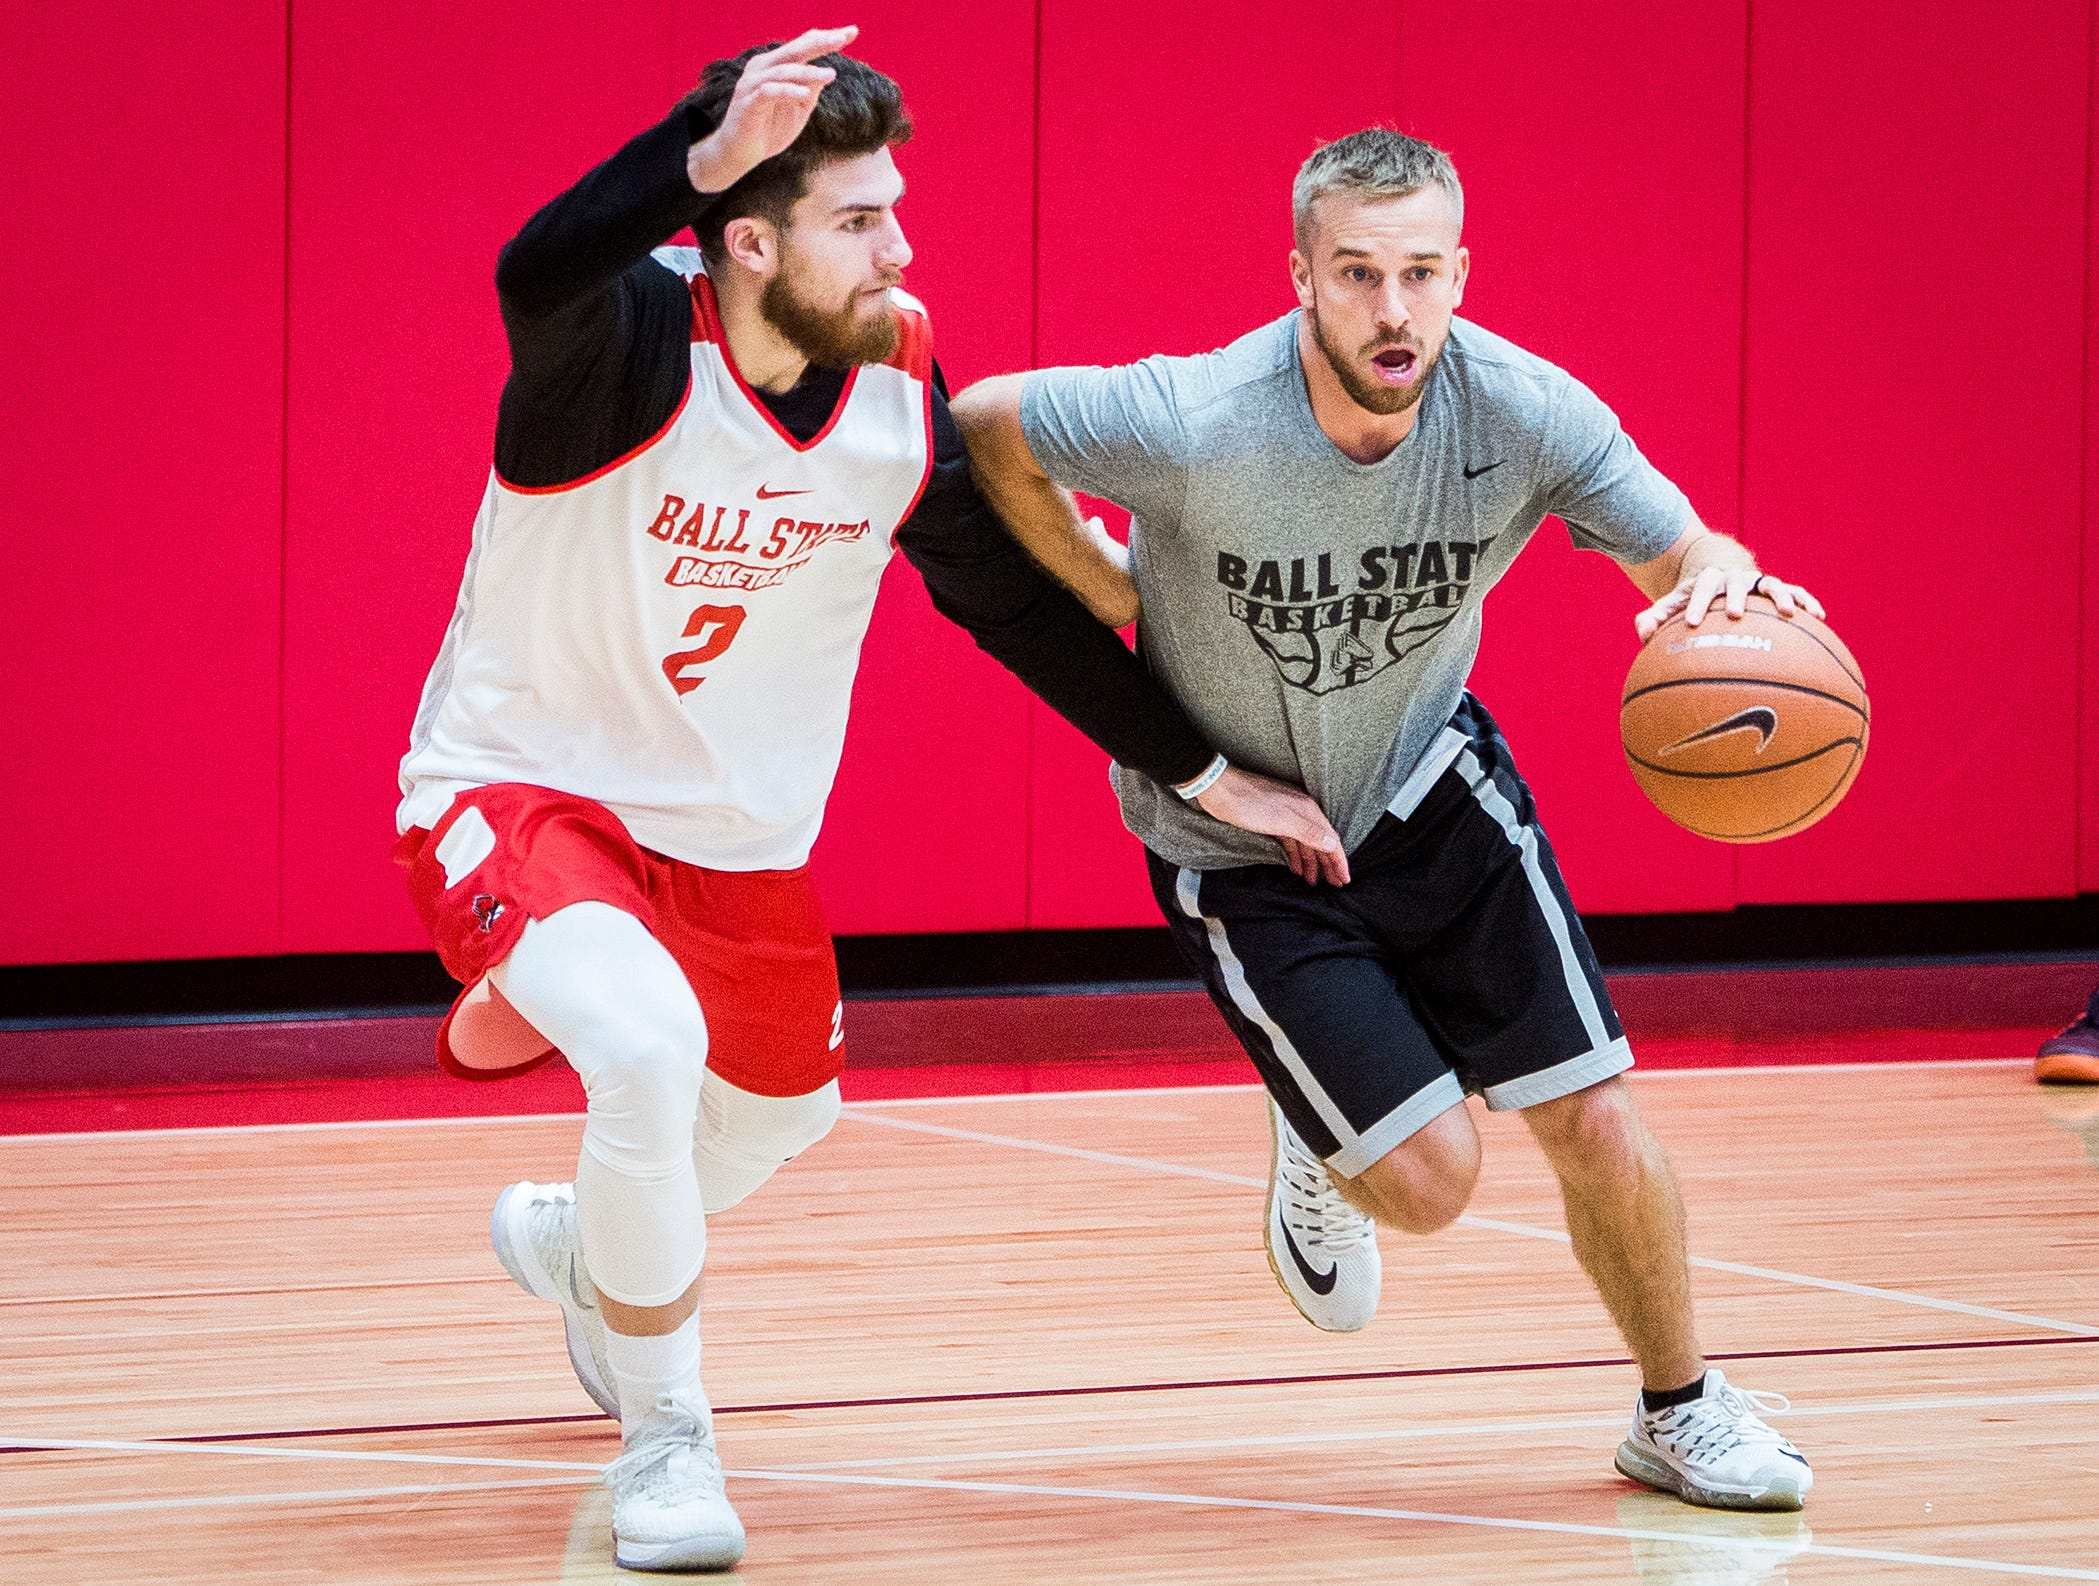 Ball State's Taylor Persons works on defense during the team's first open practice Tuesday, Sept. 25, 2018.